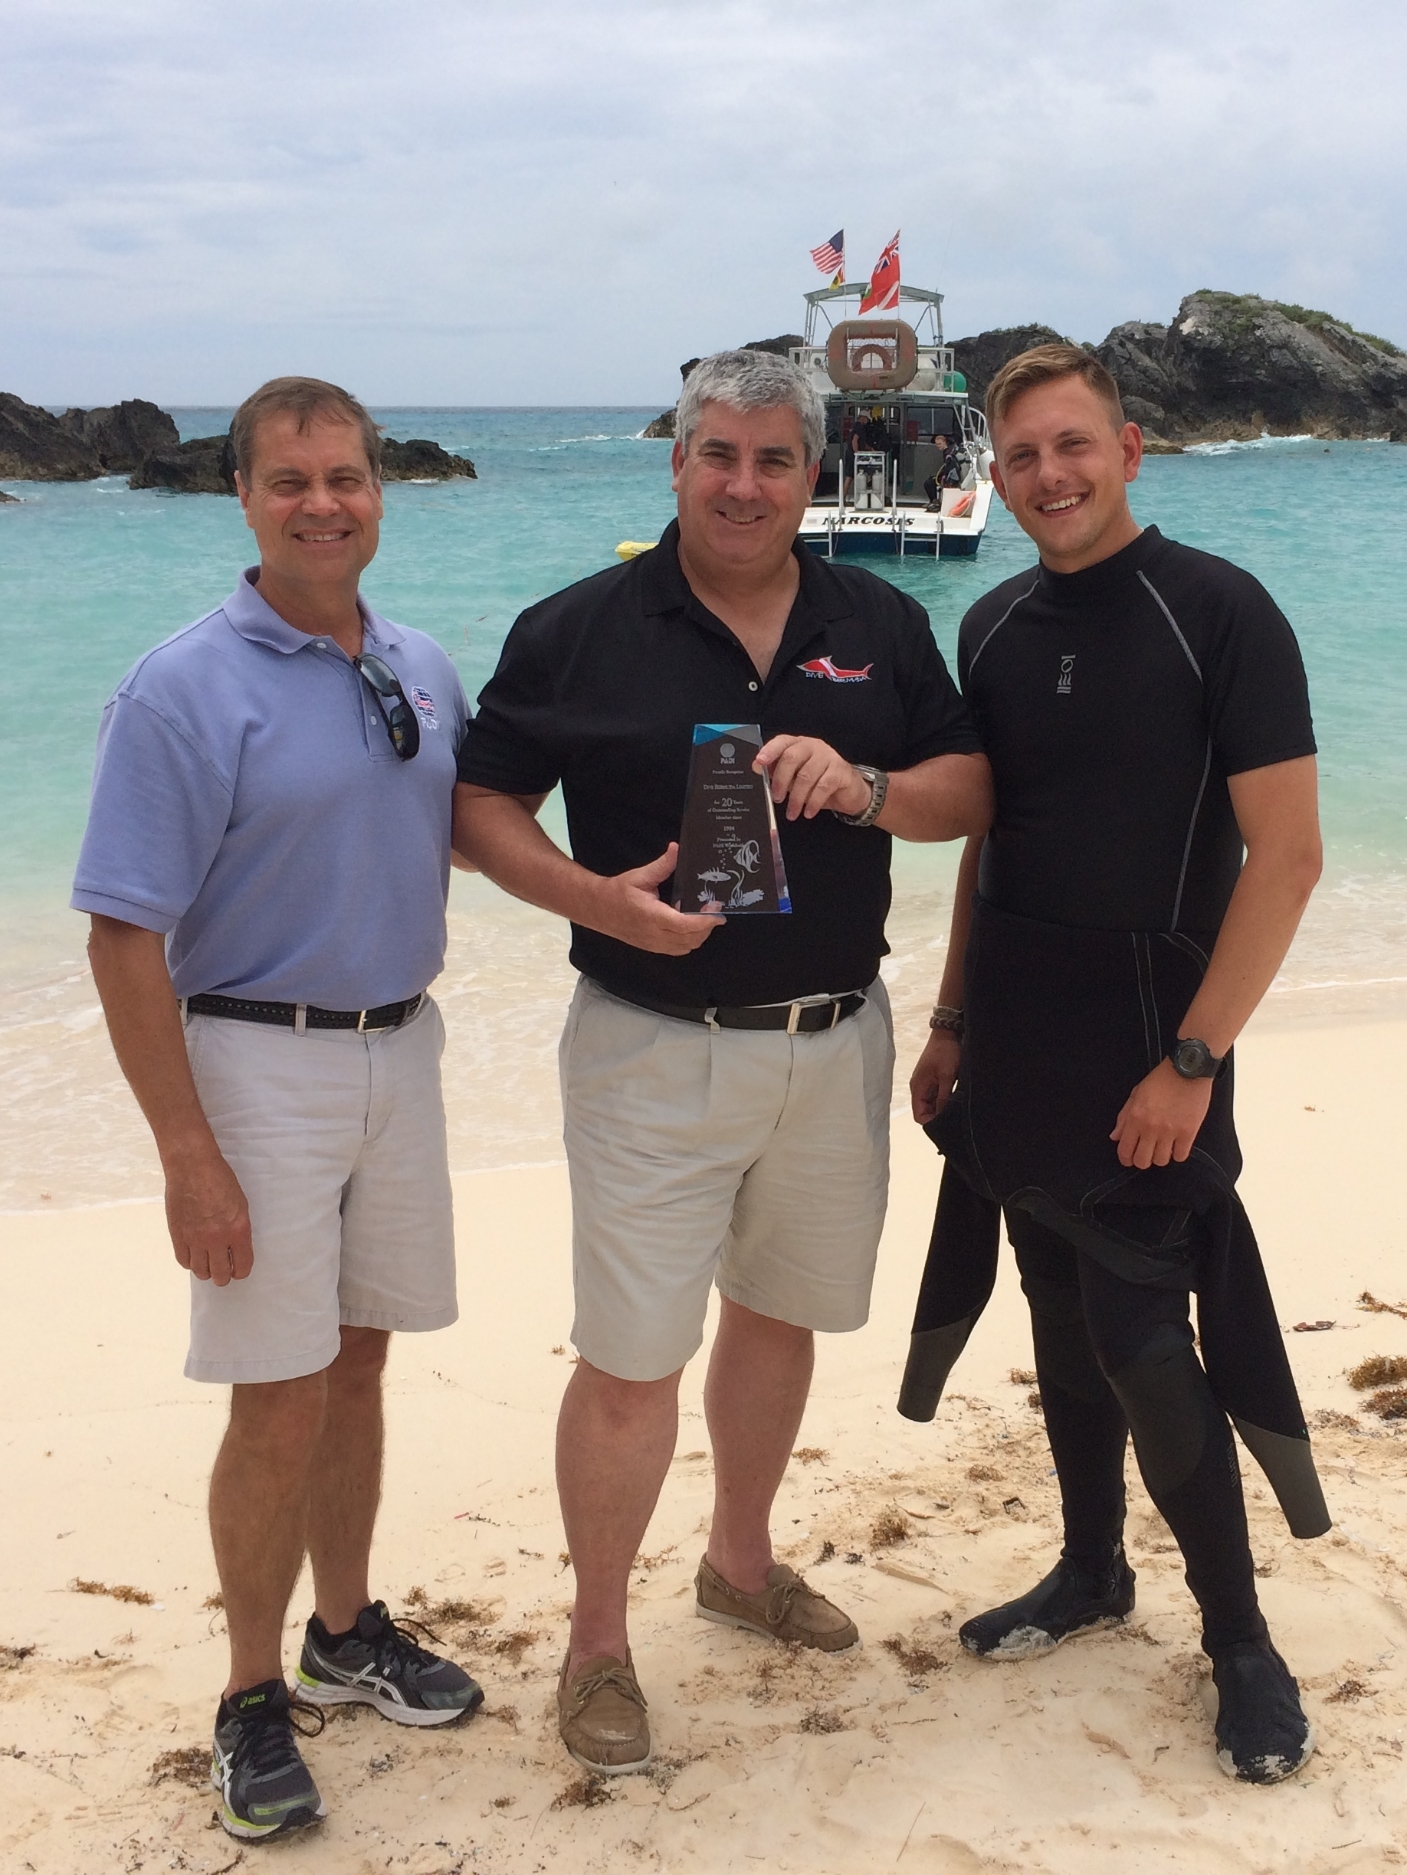 Owner Mark receiving an award for 20 years of outstanding service from PADI Regional Manager Bill Hamm.